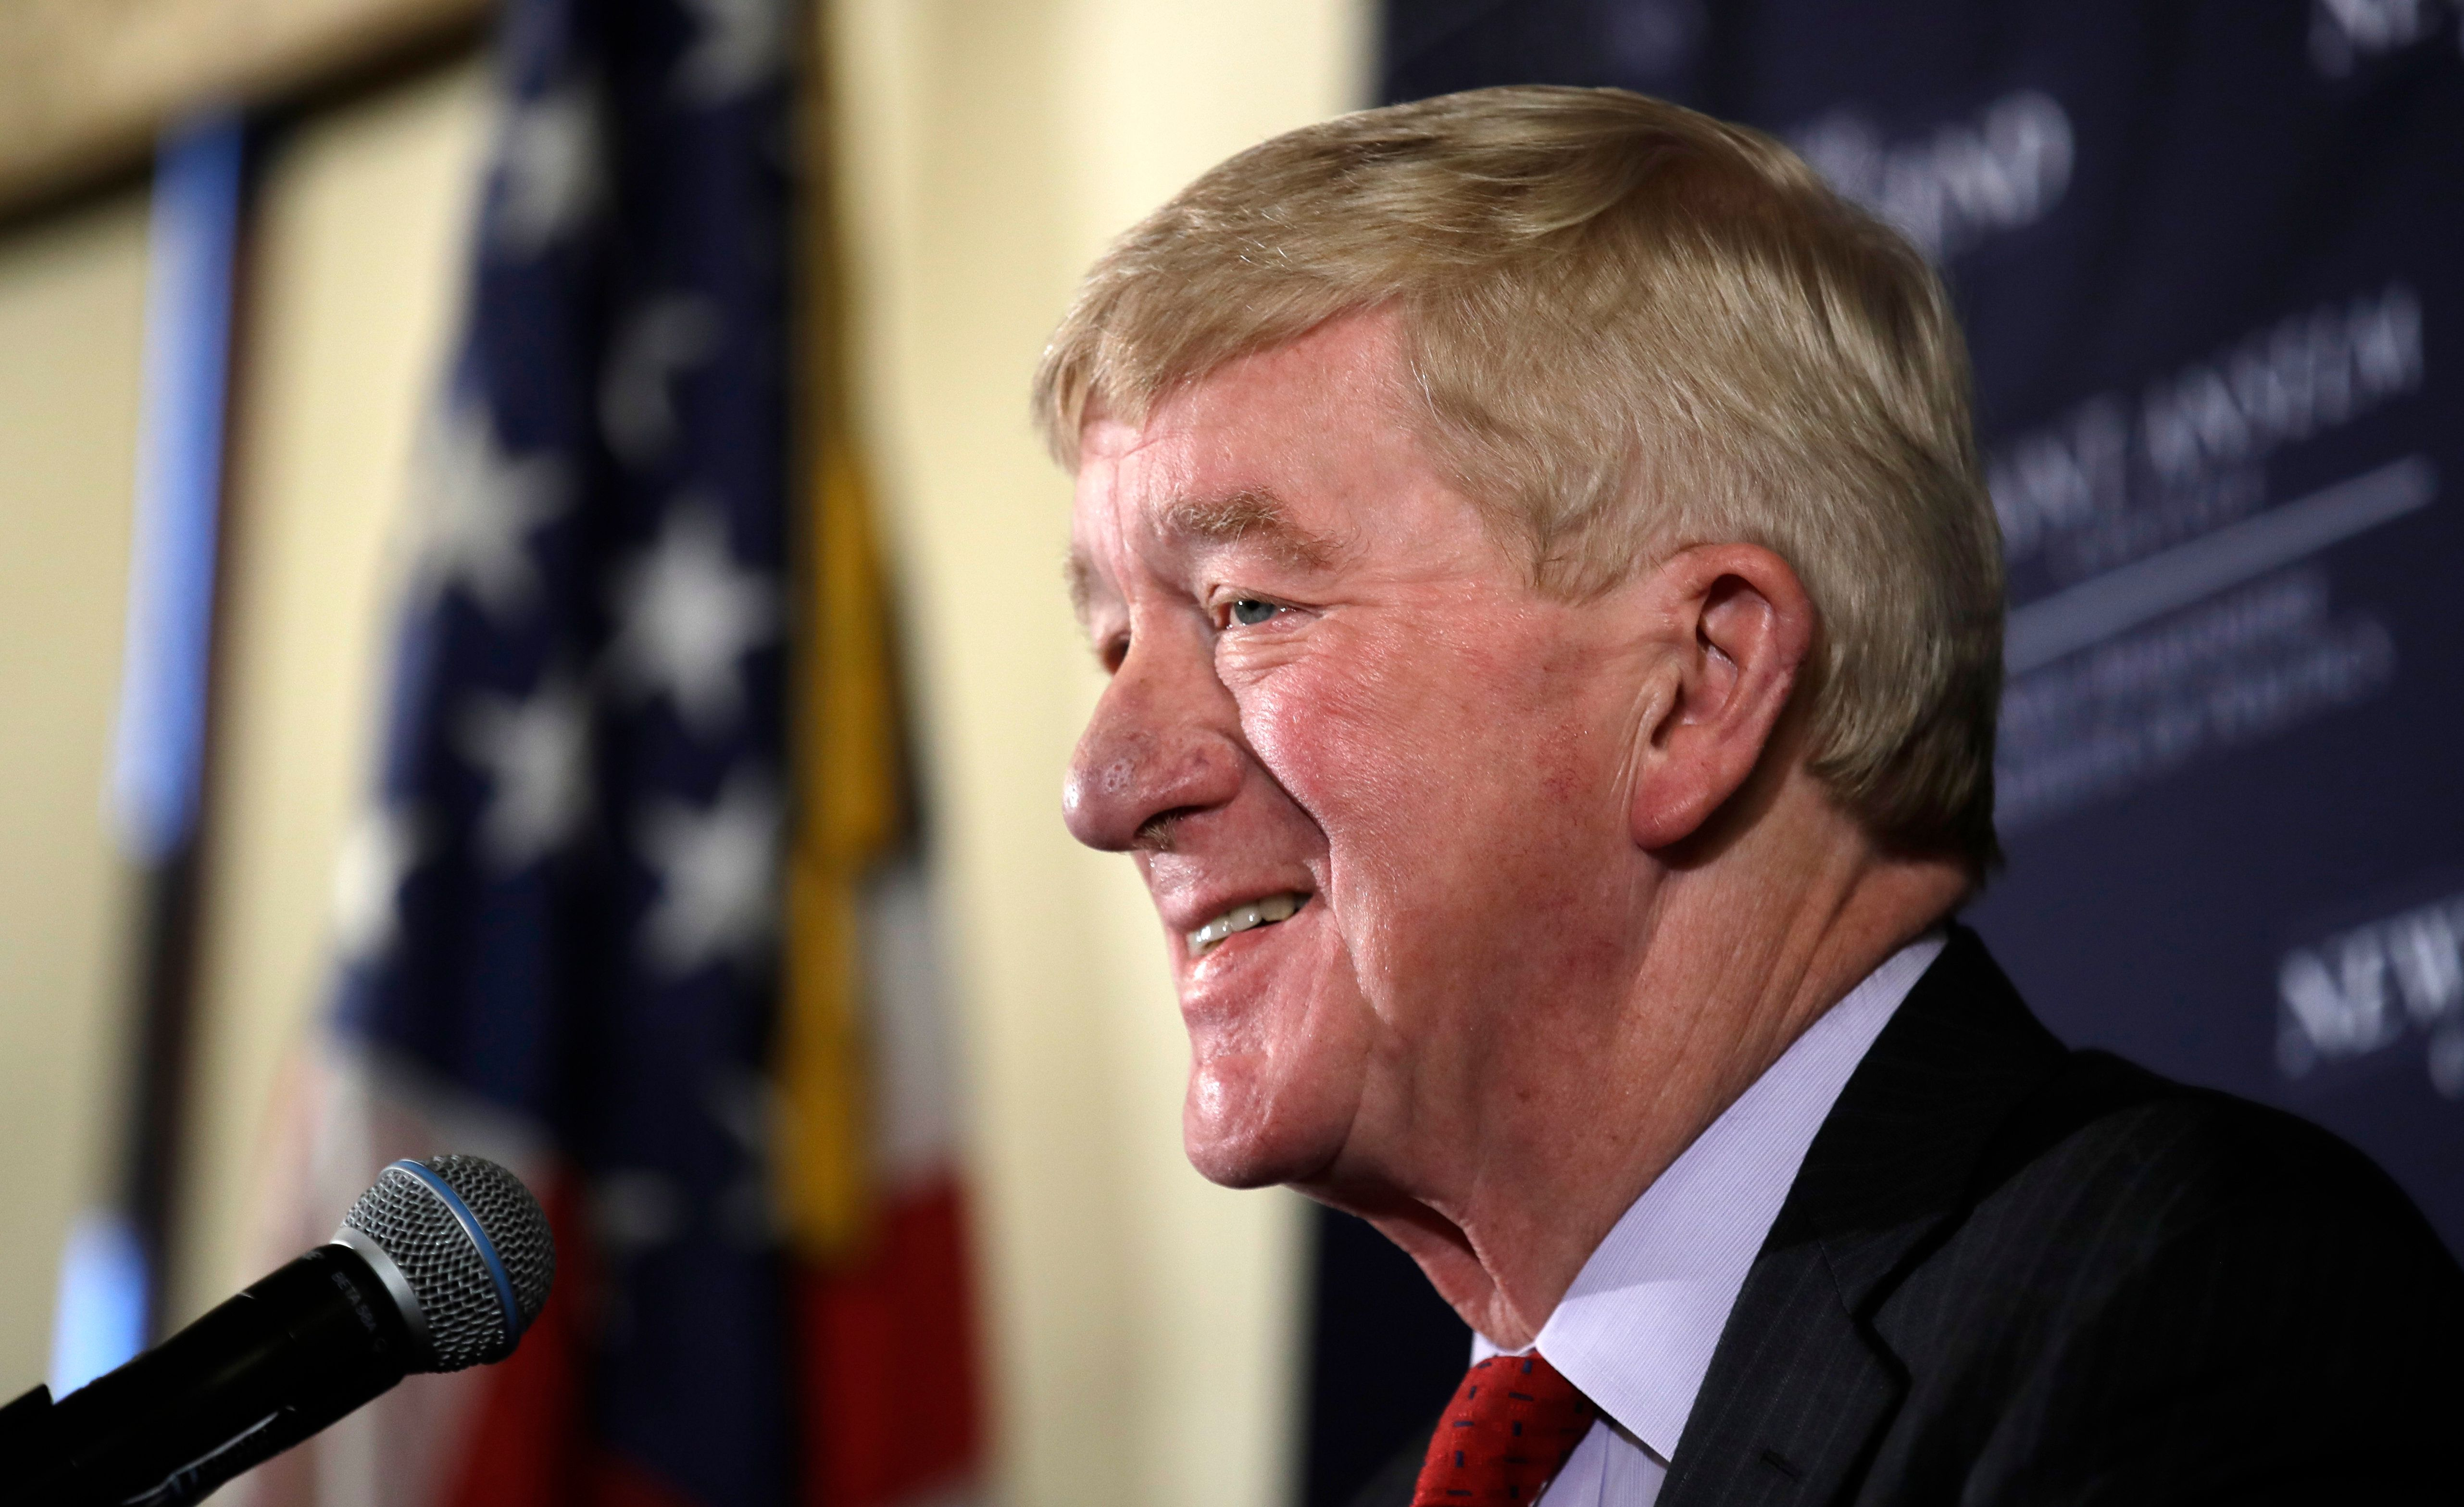 Former Massachusetts Gov. William Weld during a New England Council 'Politics & Eggs' breakfast in Bedford, N.H., Friday, Feb. 15, 2019. (AP Photo/Charles Krupa)